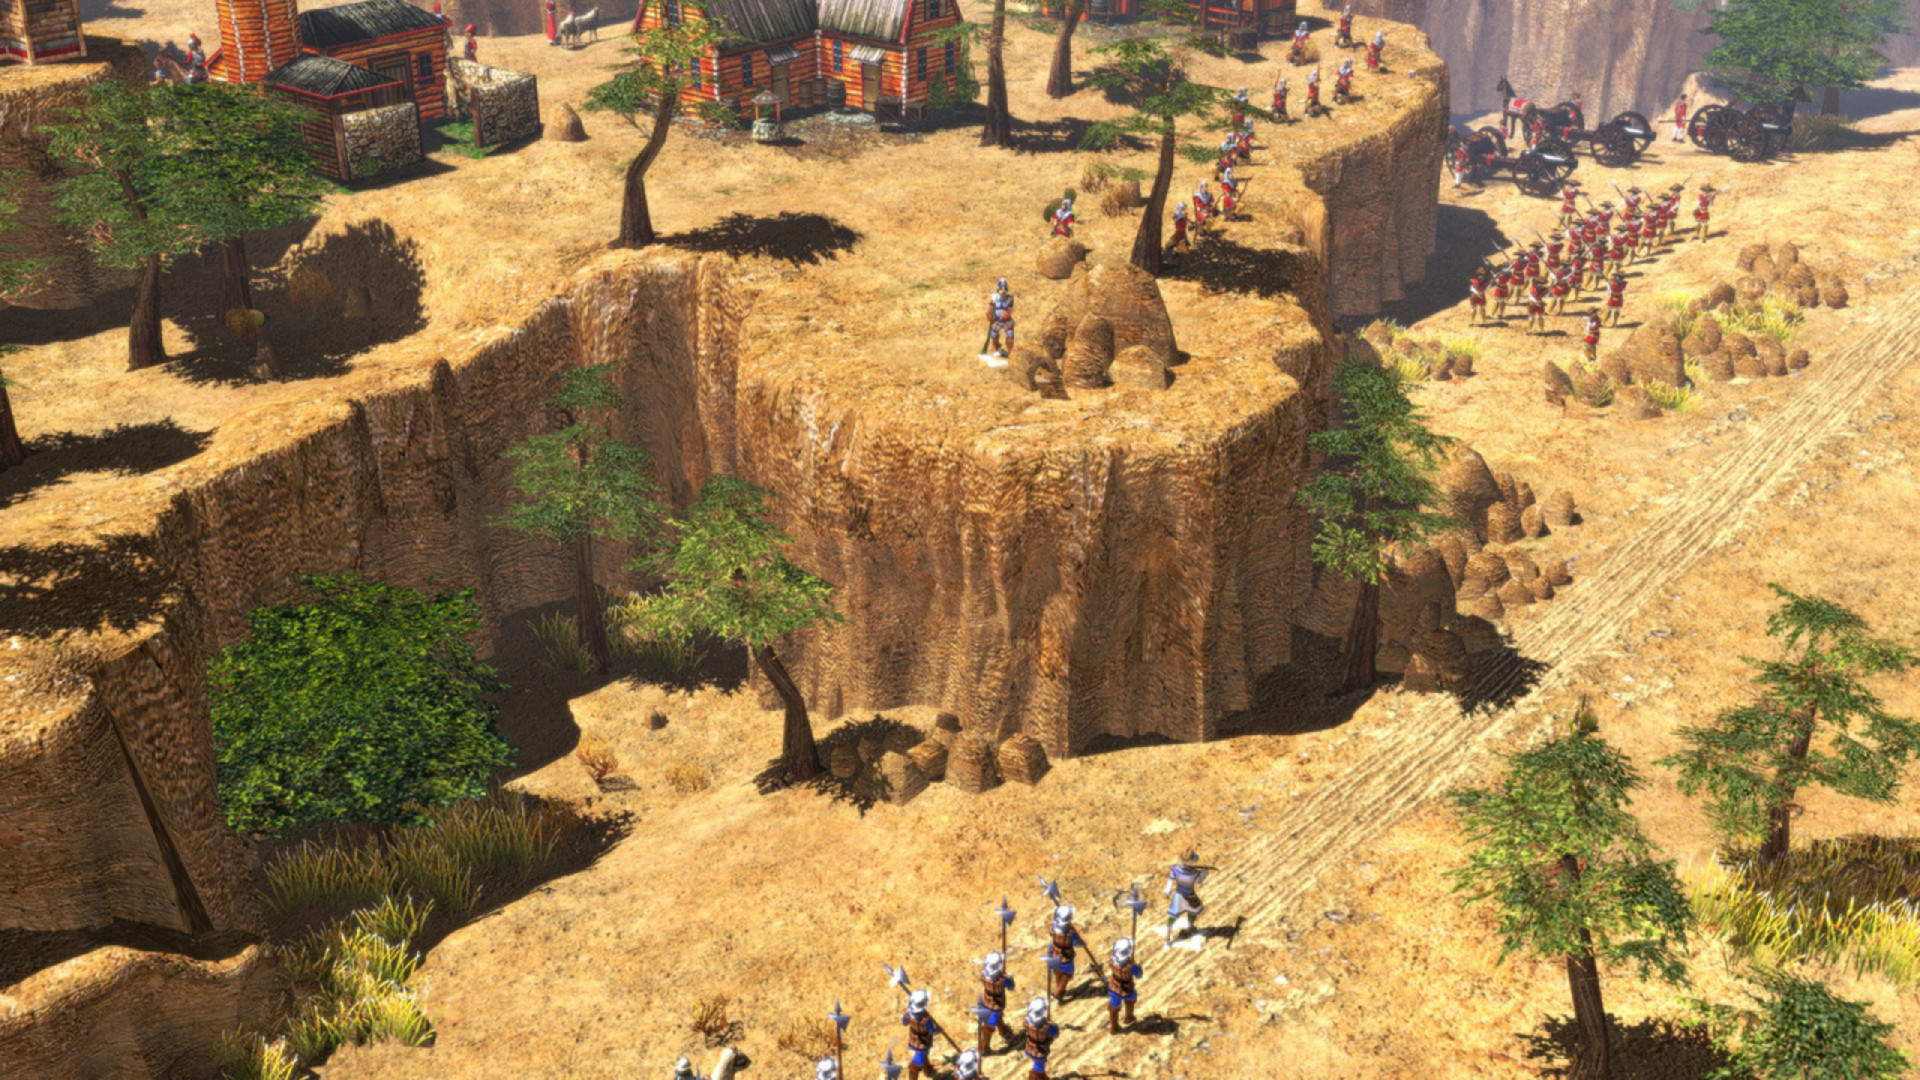 age of empires An unoffical expansion, age of empires ii - forgotten empires was released in december 2012 the last aoe expansion and latest title of the saga, age of empires iii - the asyan dynasties was released in october 2007.